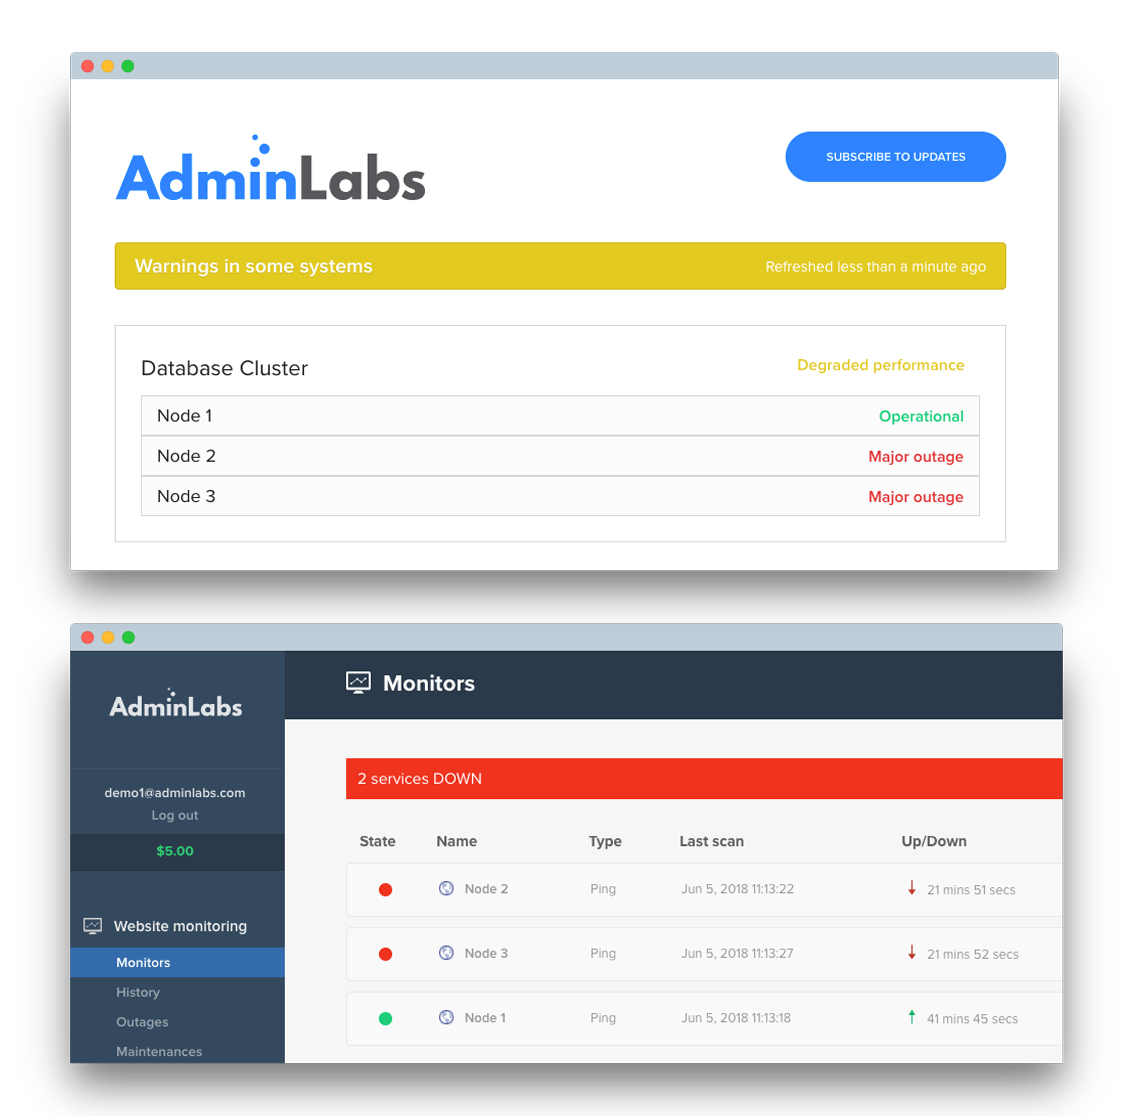 AdminLabs monitors